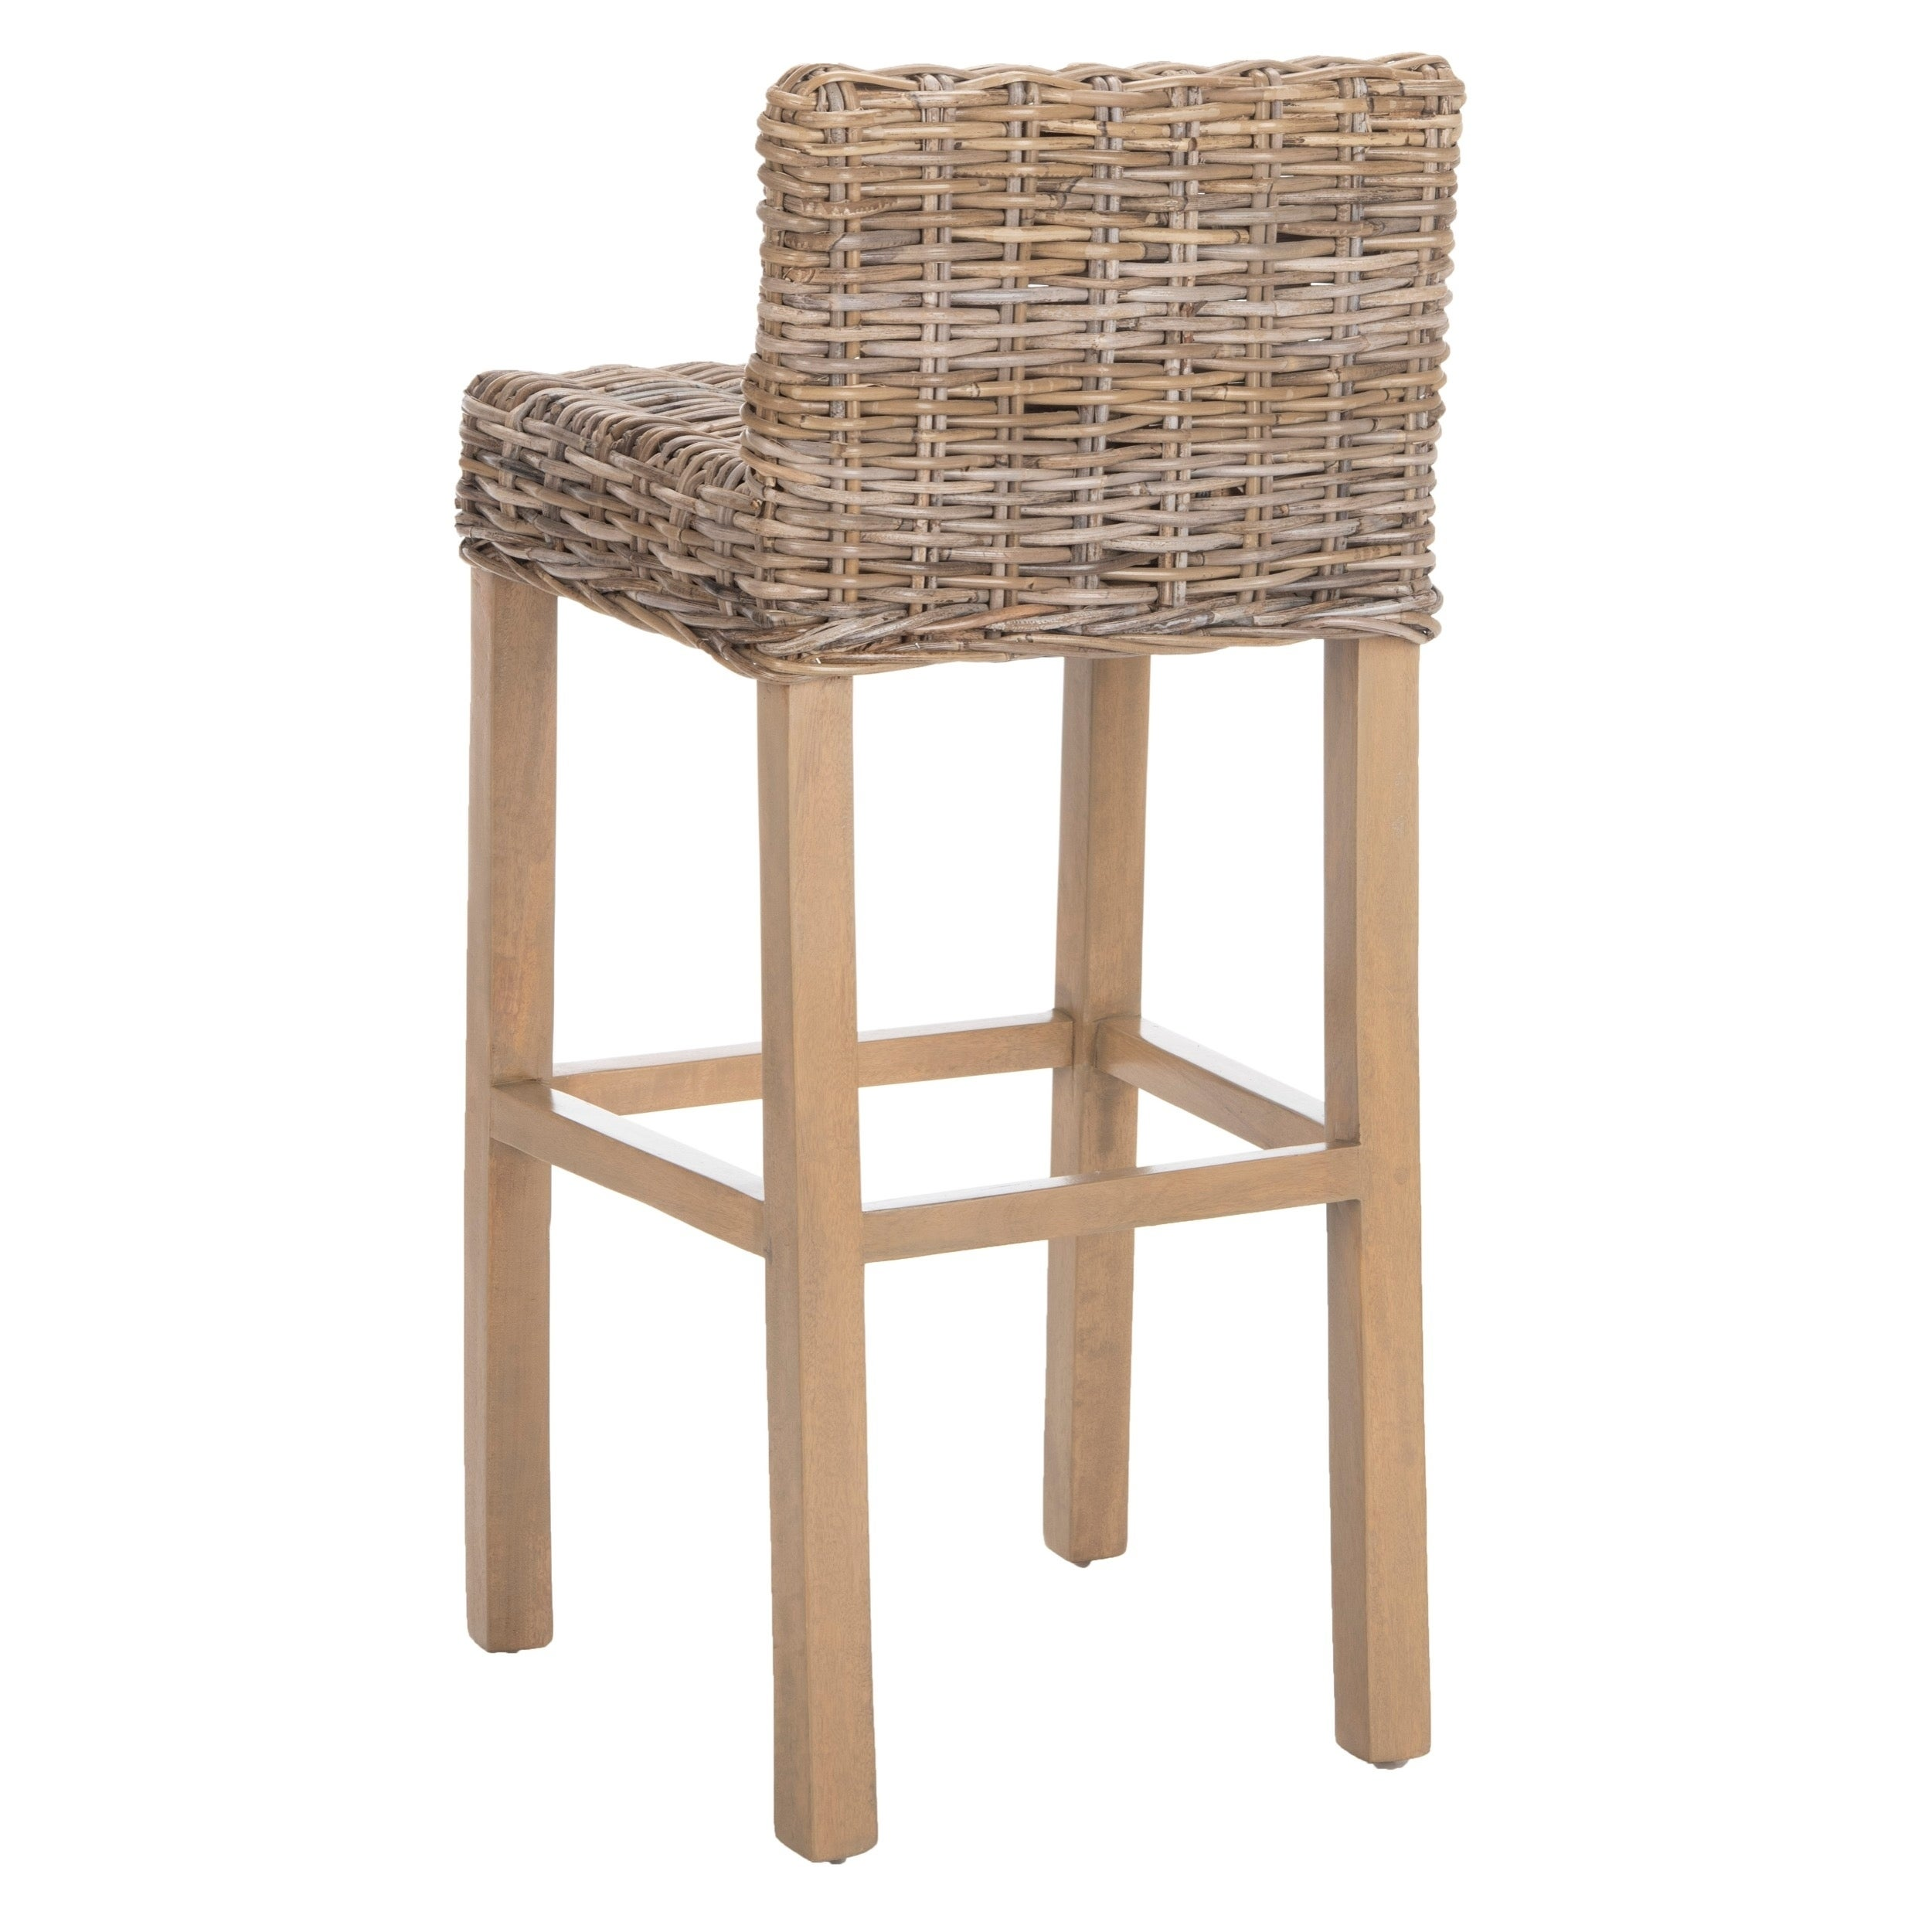 Shop safavieh 30 inch st grey beige wicker bar stool free shipping today overstock com 6347621